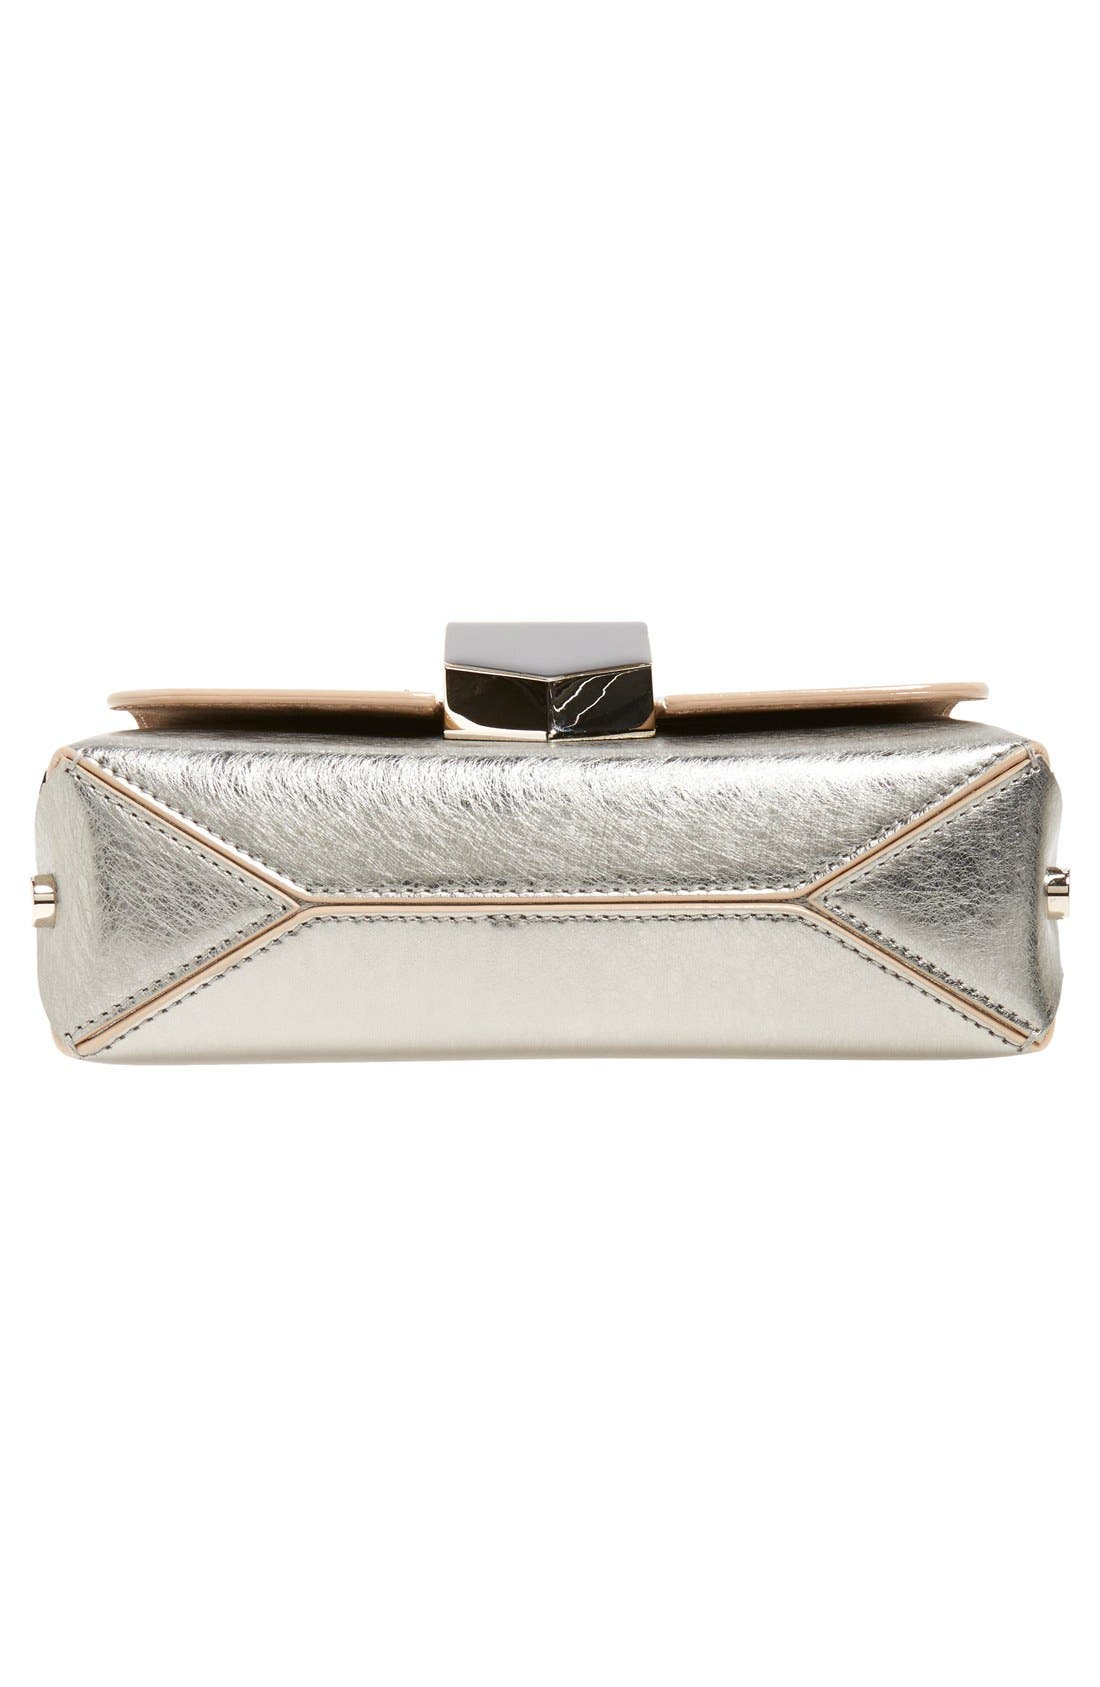 'Lockett Petite' Metallic Leather Shoulder Bag,                             Alternate thumbnail 6, color,                             Vintage Silver